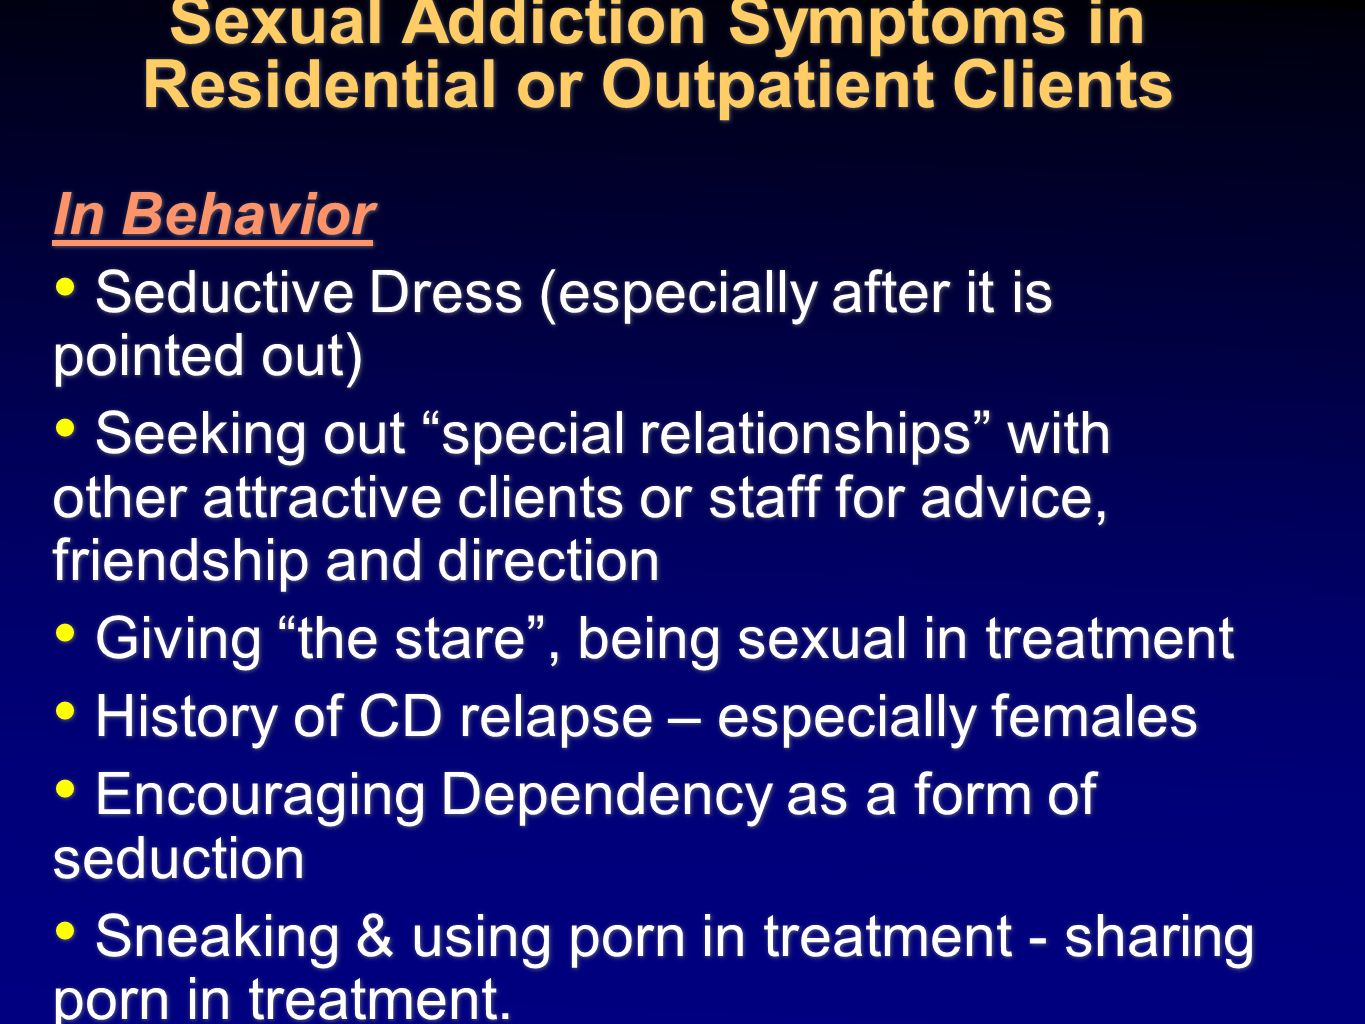 Sexual Addiction Symptoms in Residential or Outpatient Clients